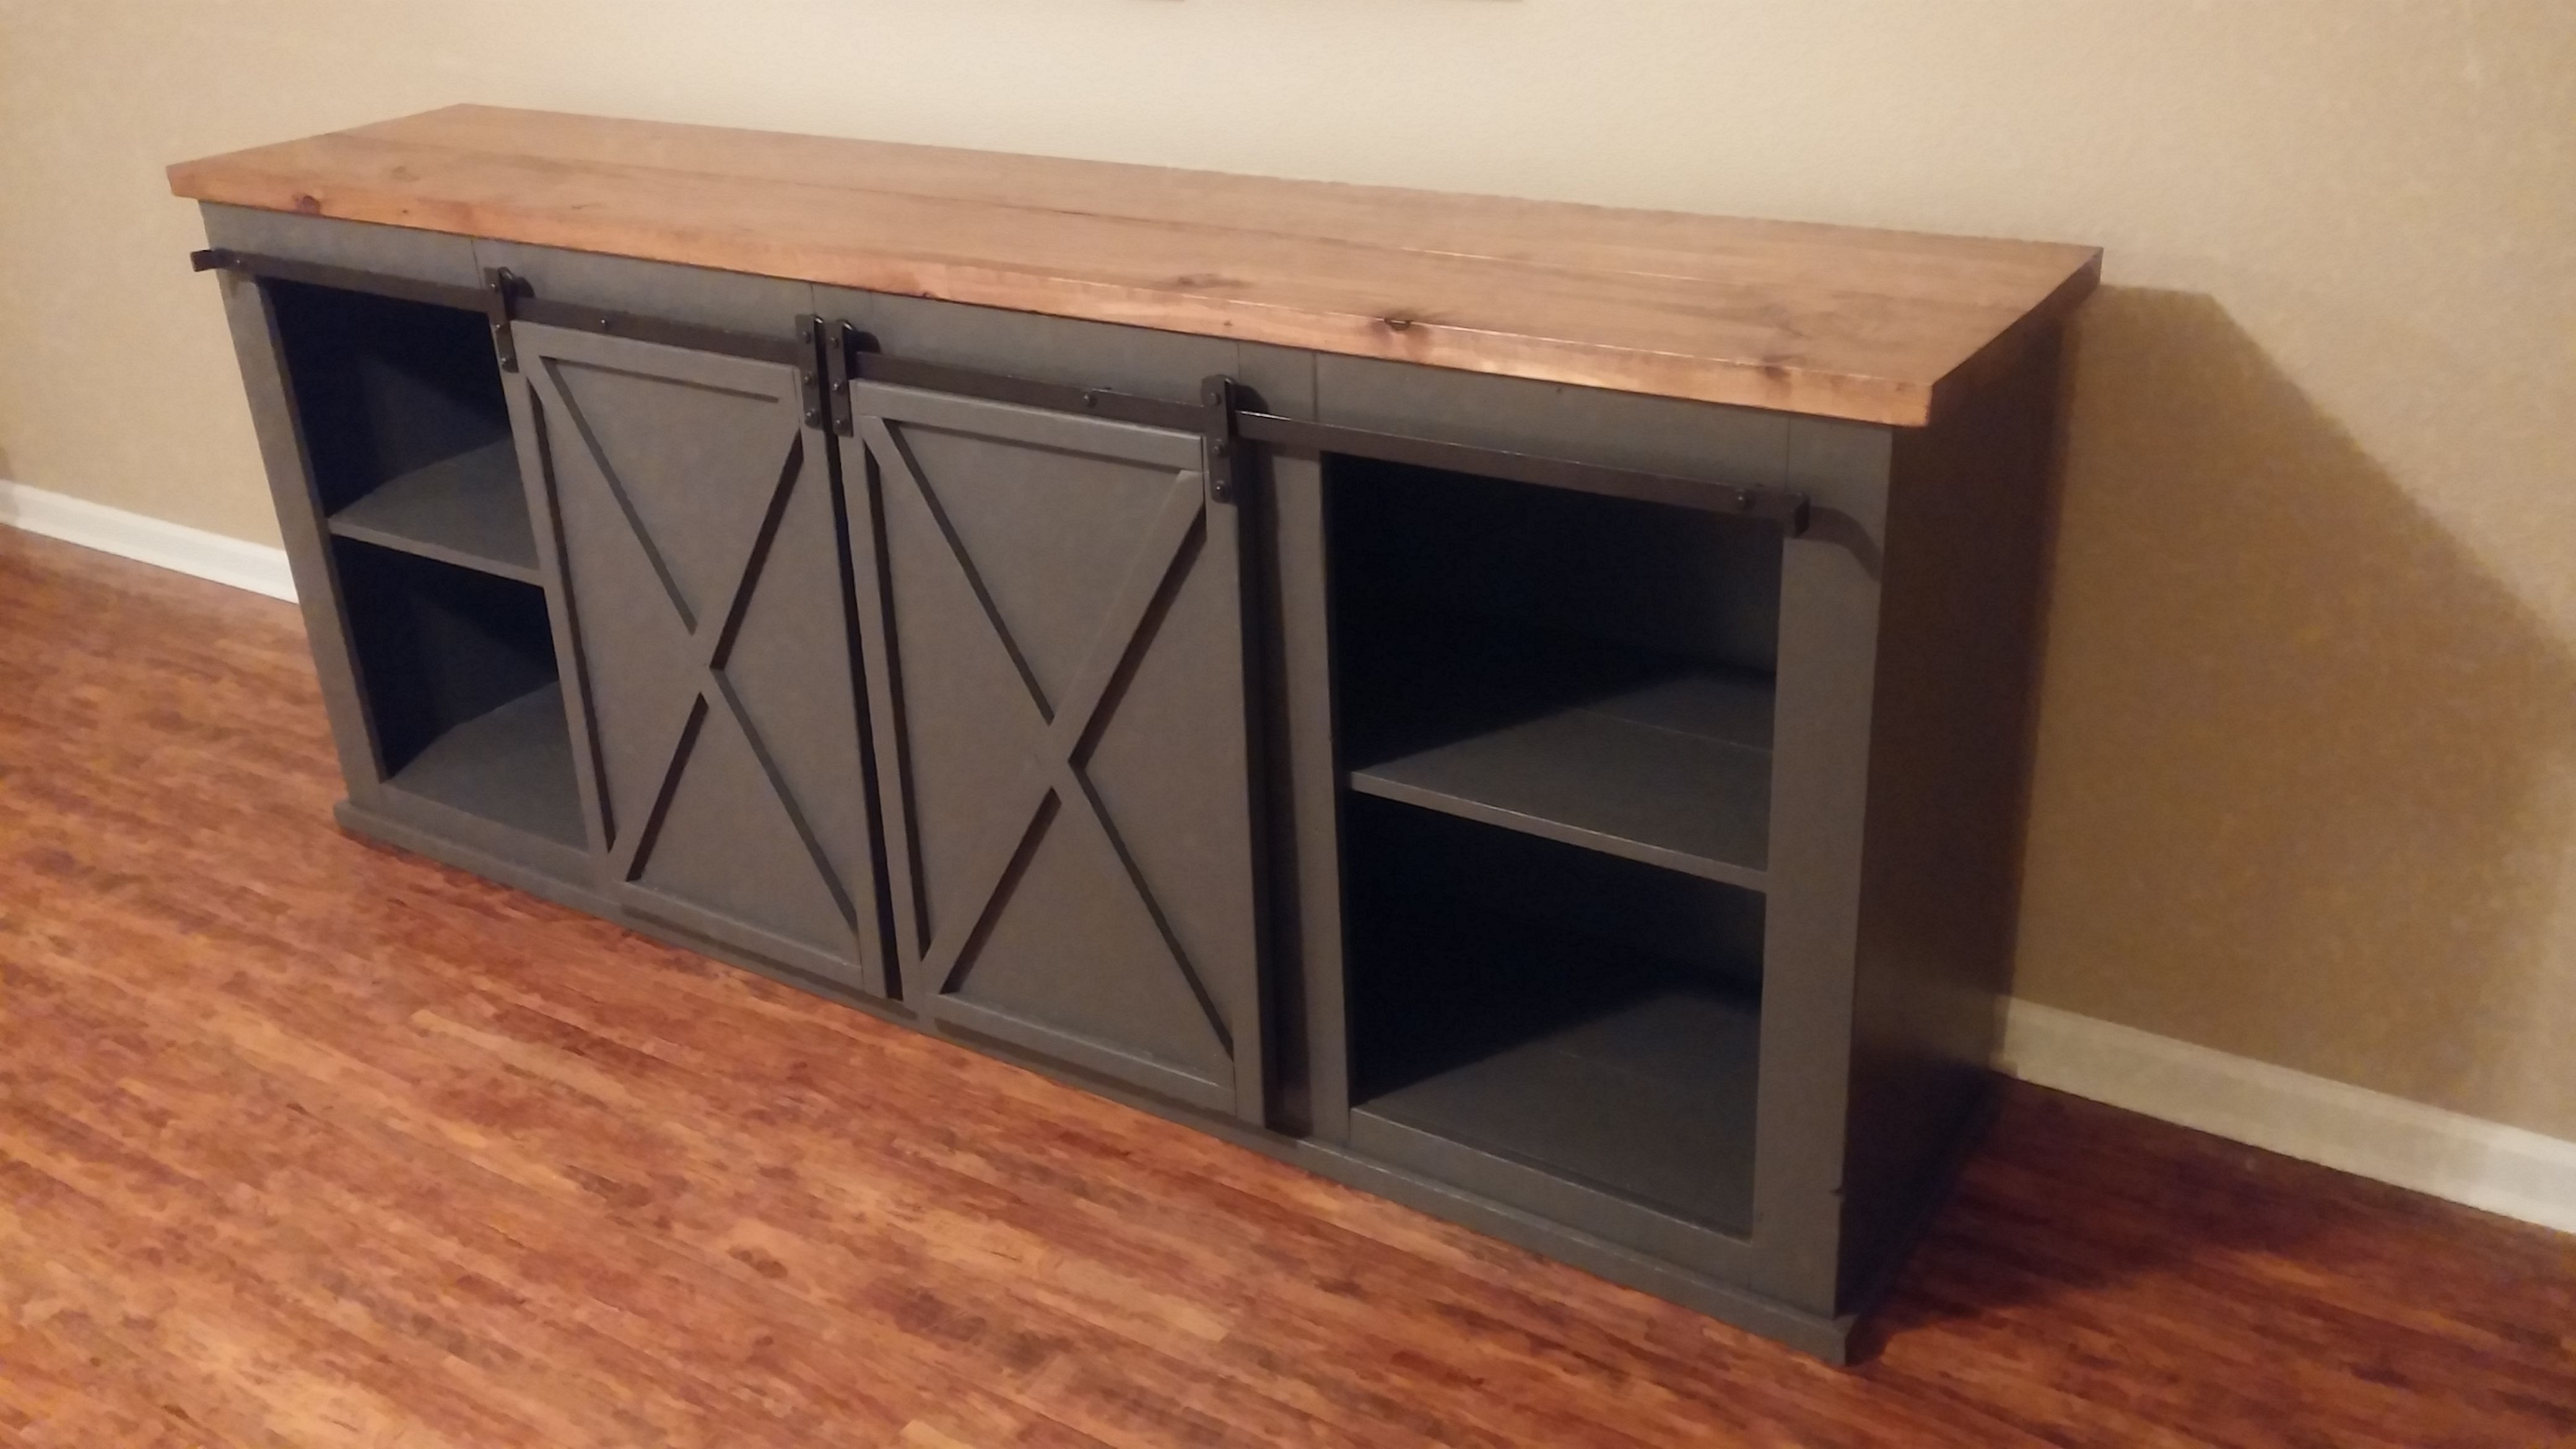 Grandy tv stand do it yourself home projects from ana white grandy tv stand do it yourself home projects from ana white solutioingenieria Image collections